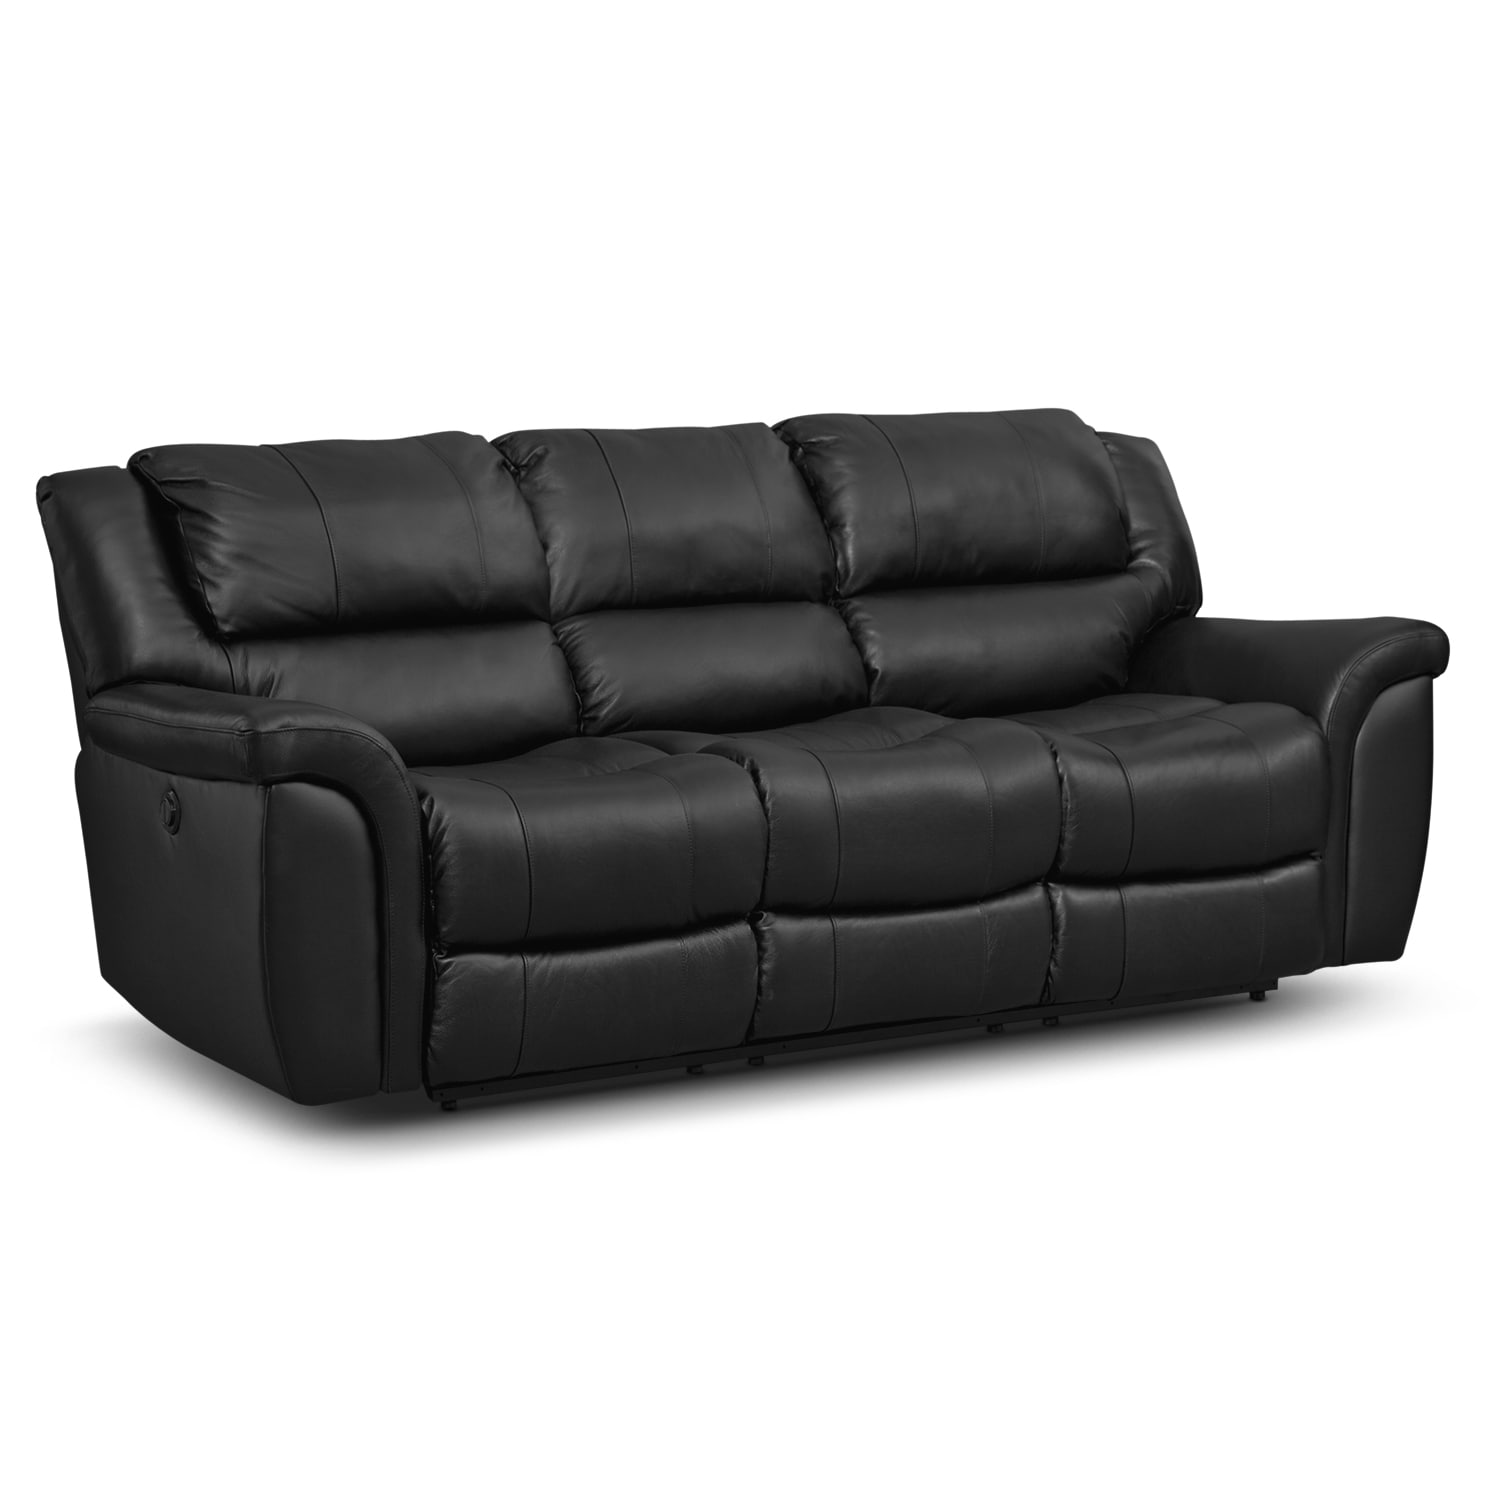 Aquarius III Dual Power Reclining Sofa